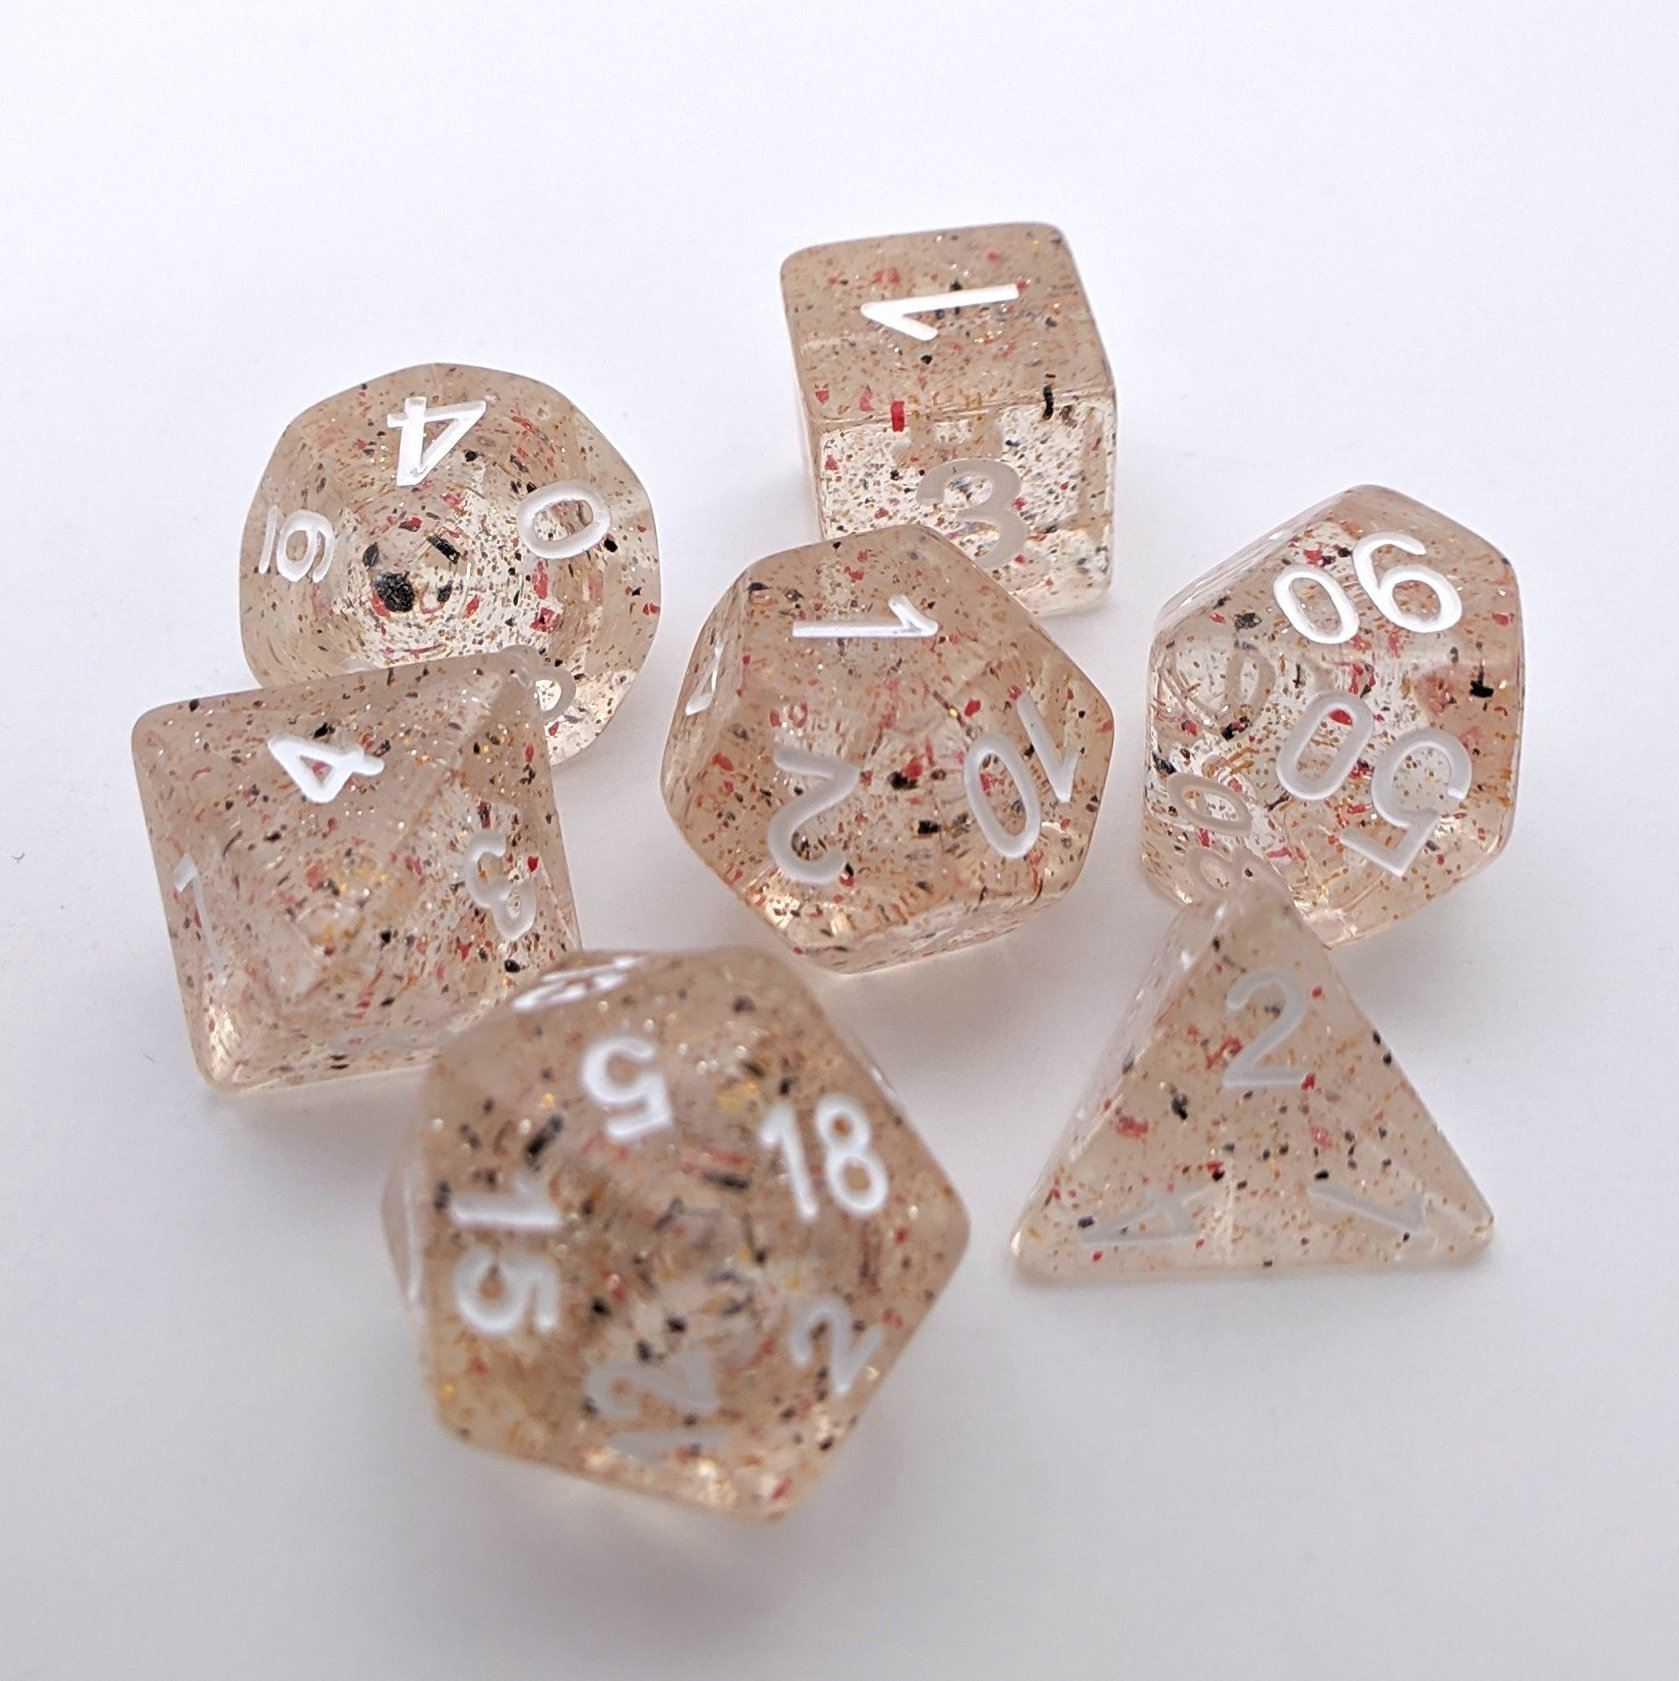 Little Stars DnD Dice Set, Glitter Dice with Red and Black Particles